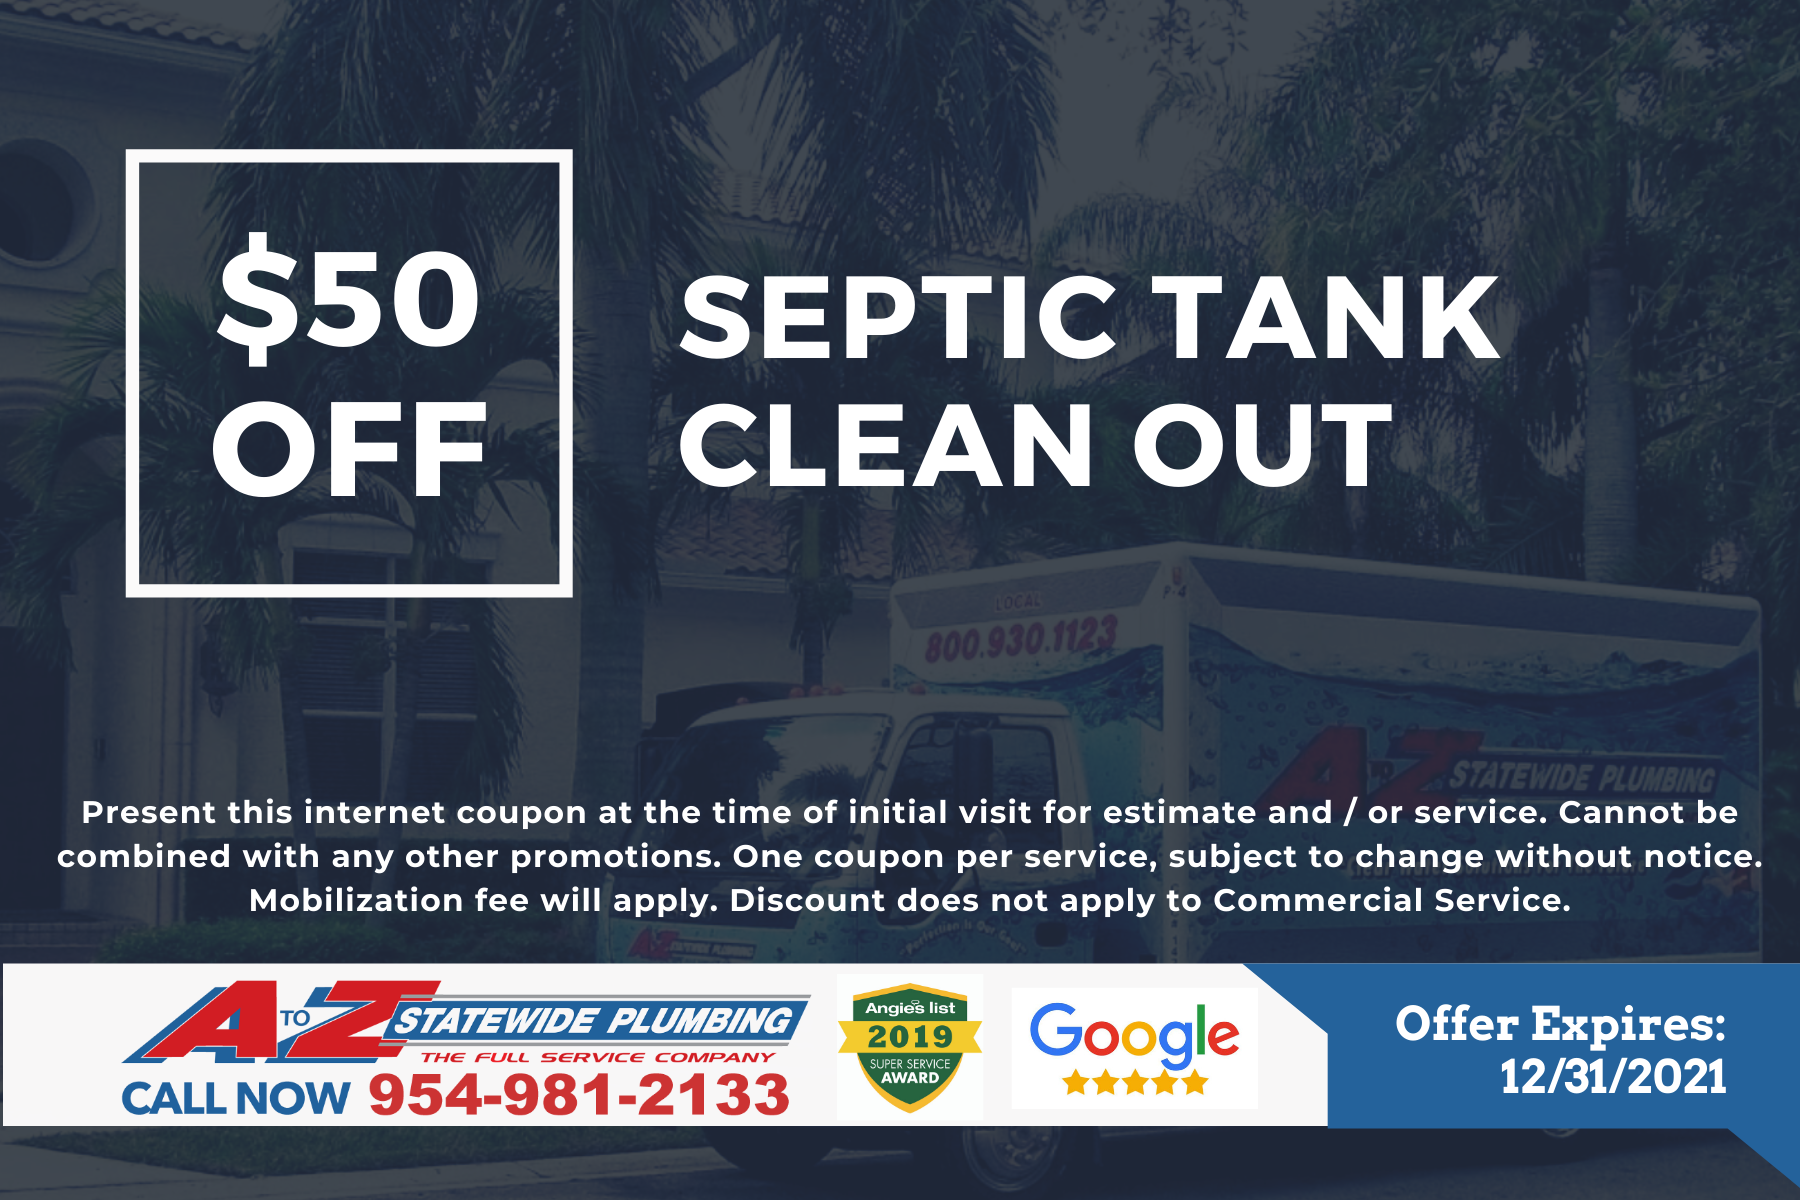 Septic tank cleanout